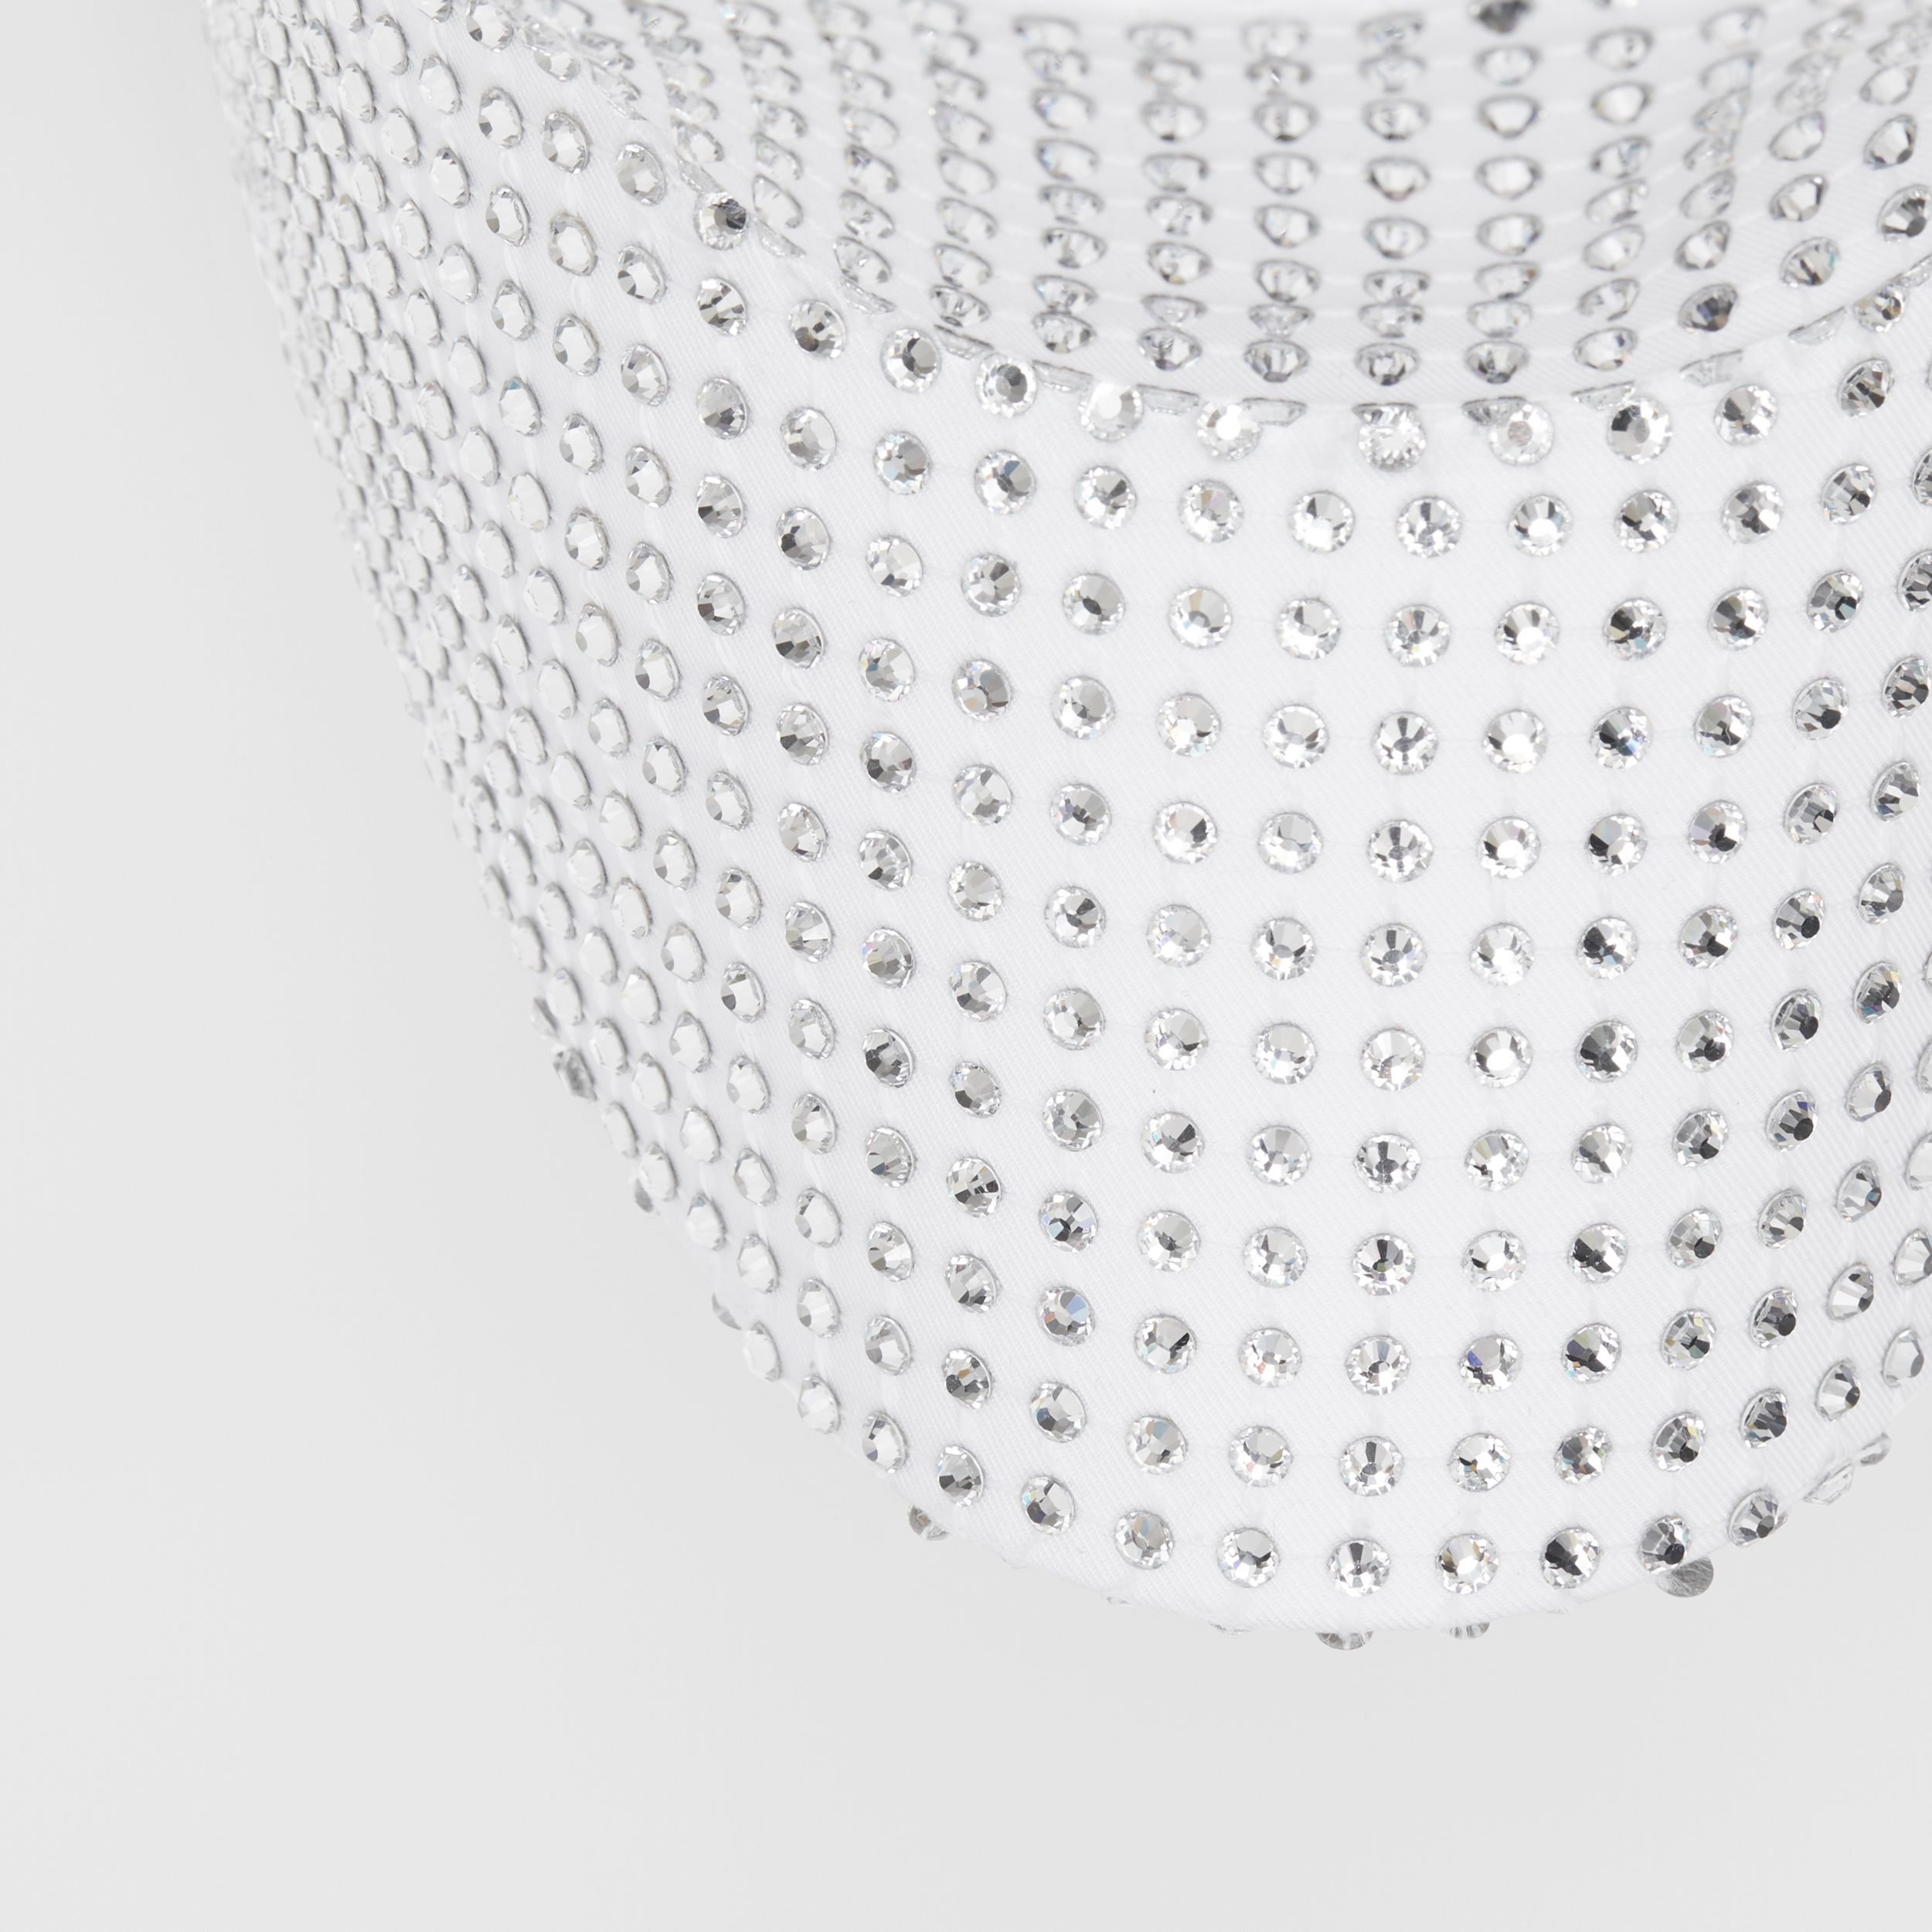 Crystal Mesh Detail Cotton Bonnet Cap in Optic White | Burberry - 2